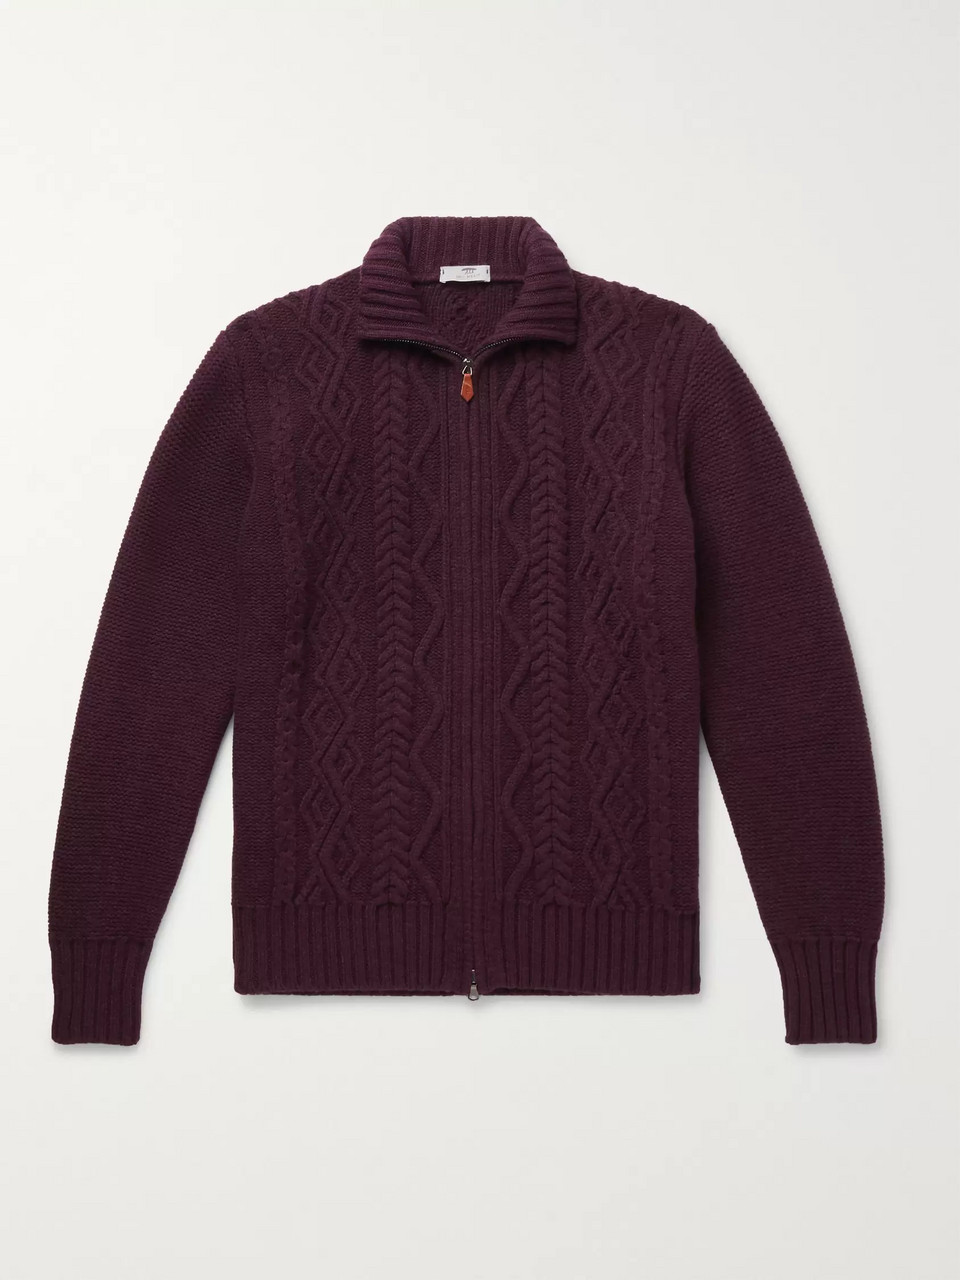 Inis Meáin Cable-Knit Merino Wool Zip-Up Cardigan